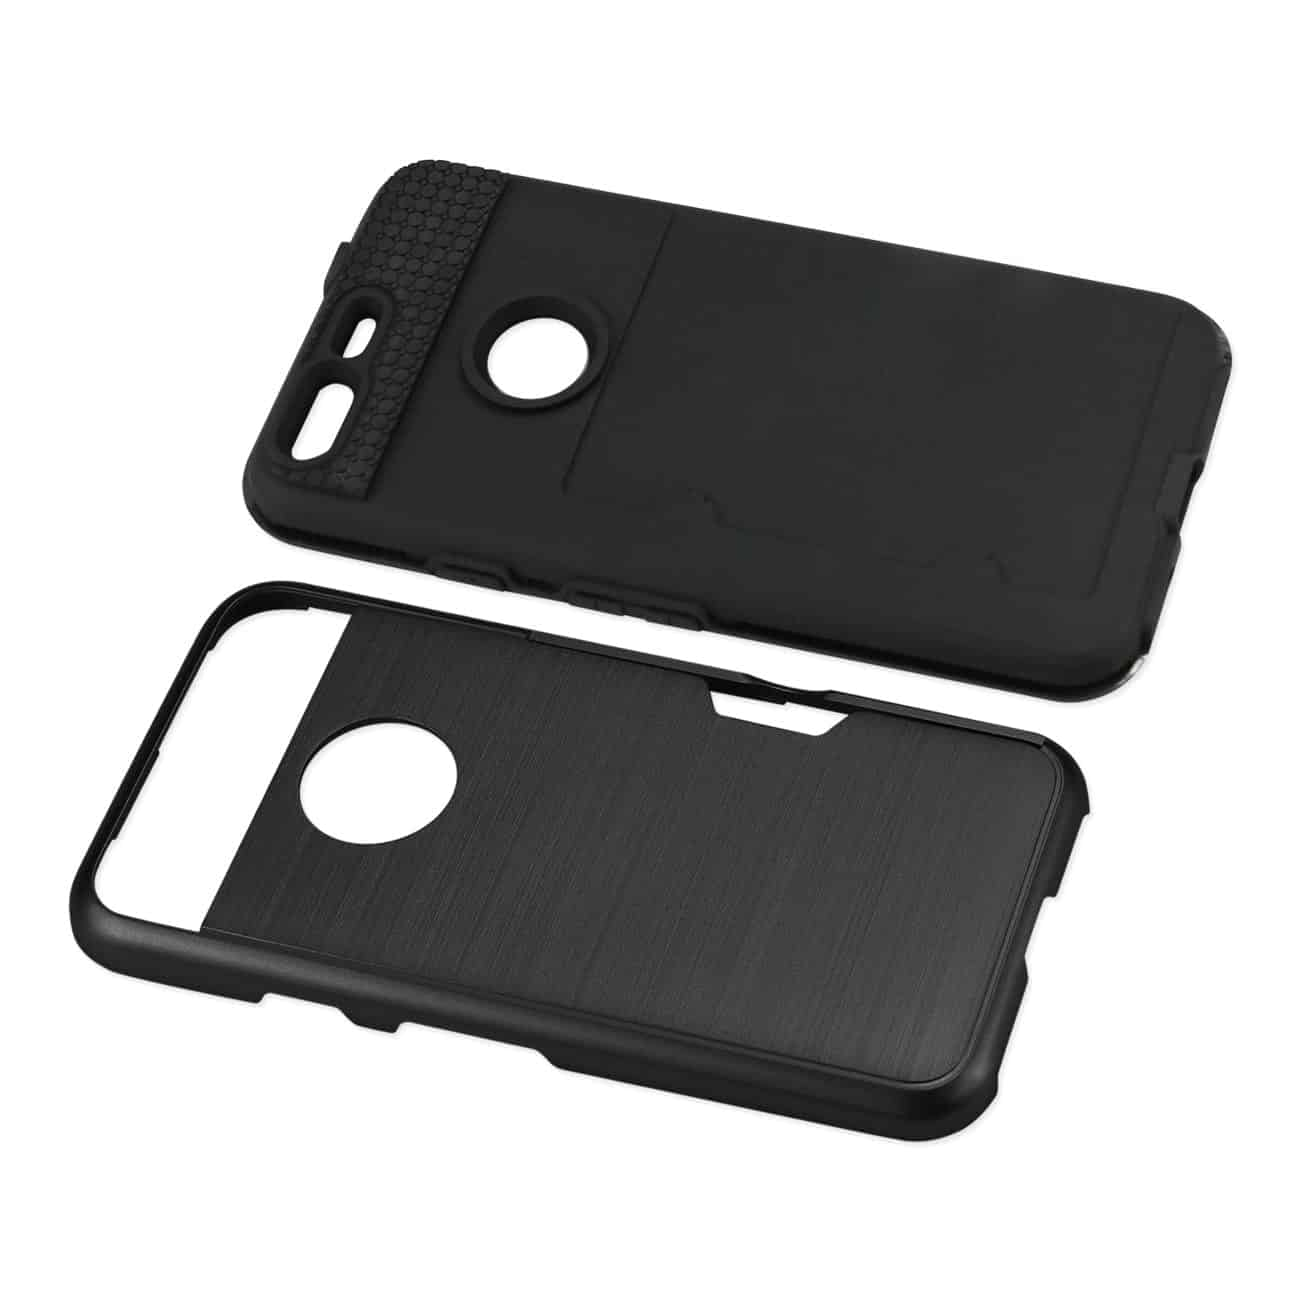 GOOGLE PIXEL SLIM ARMOR HYBRID CASE WITH CARD HOLDER IN BLACK